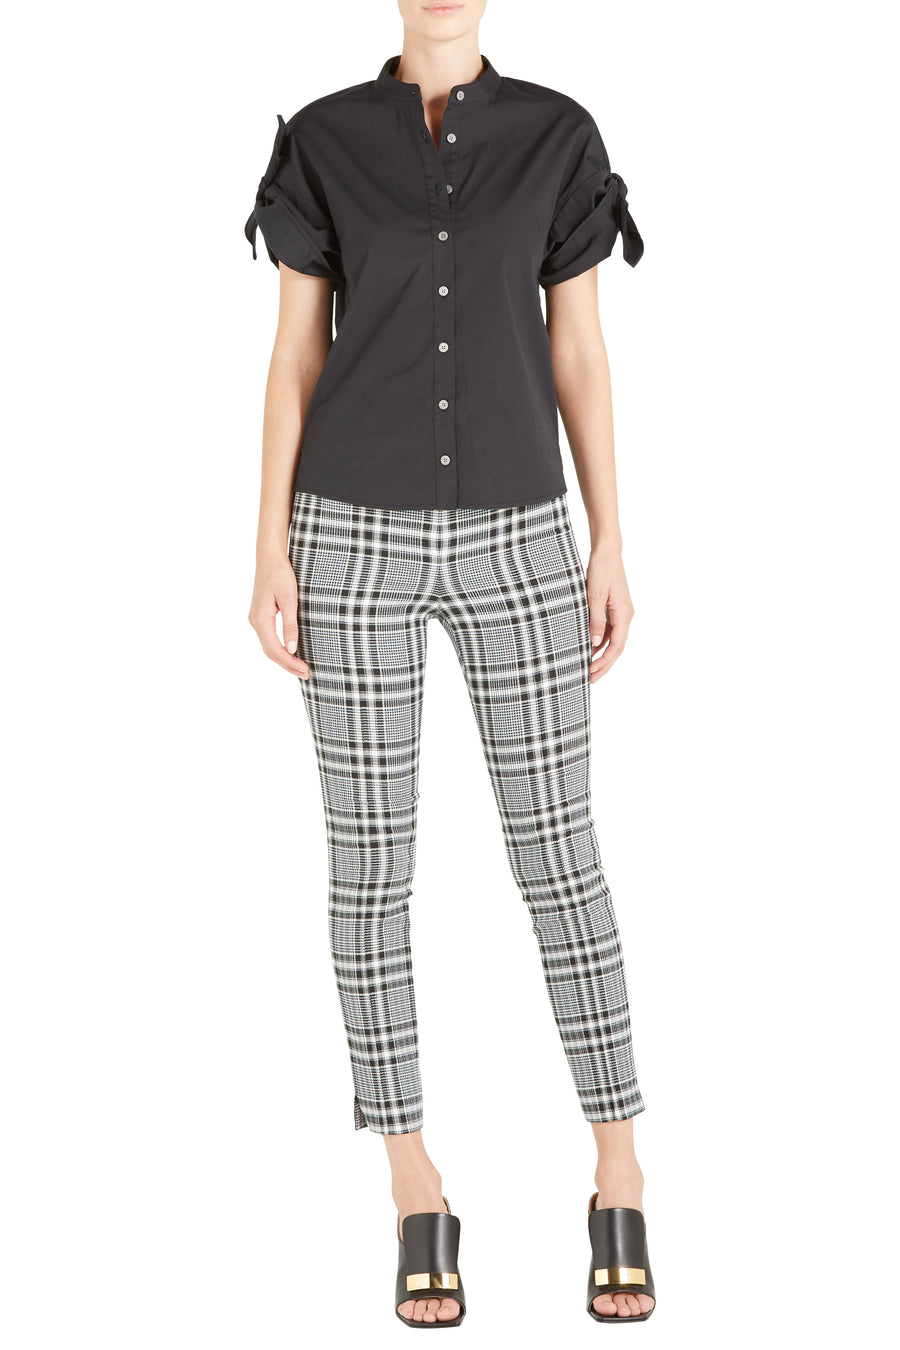 SANAA COTTON POPLIN SHIRT